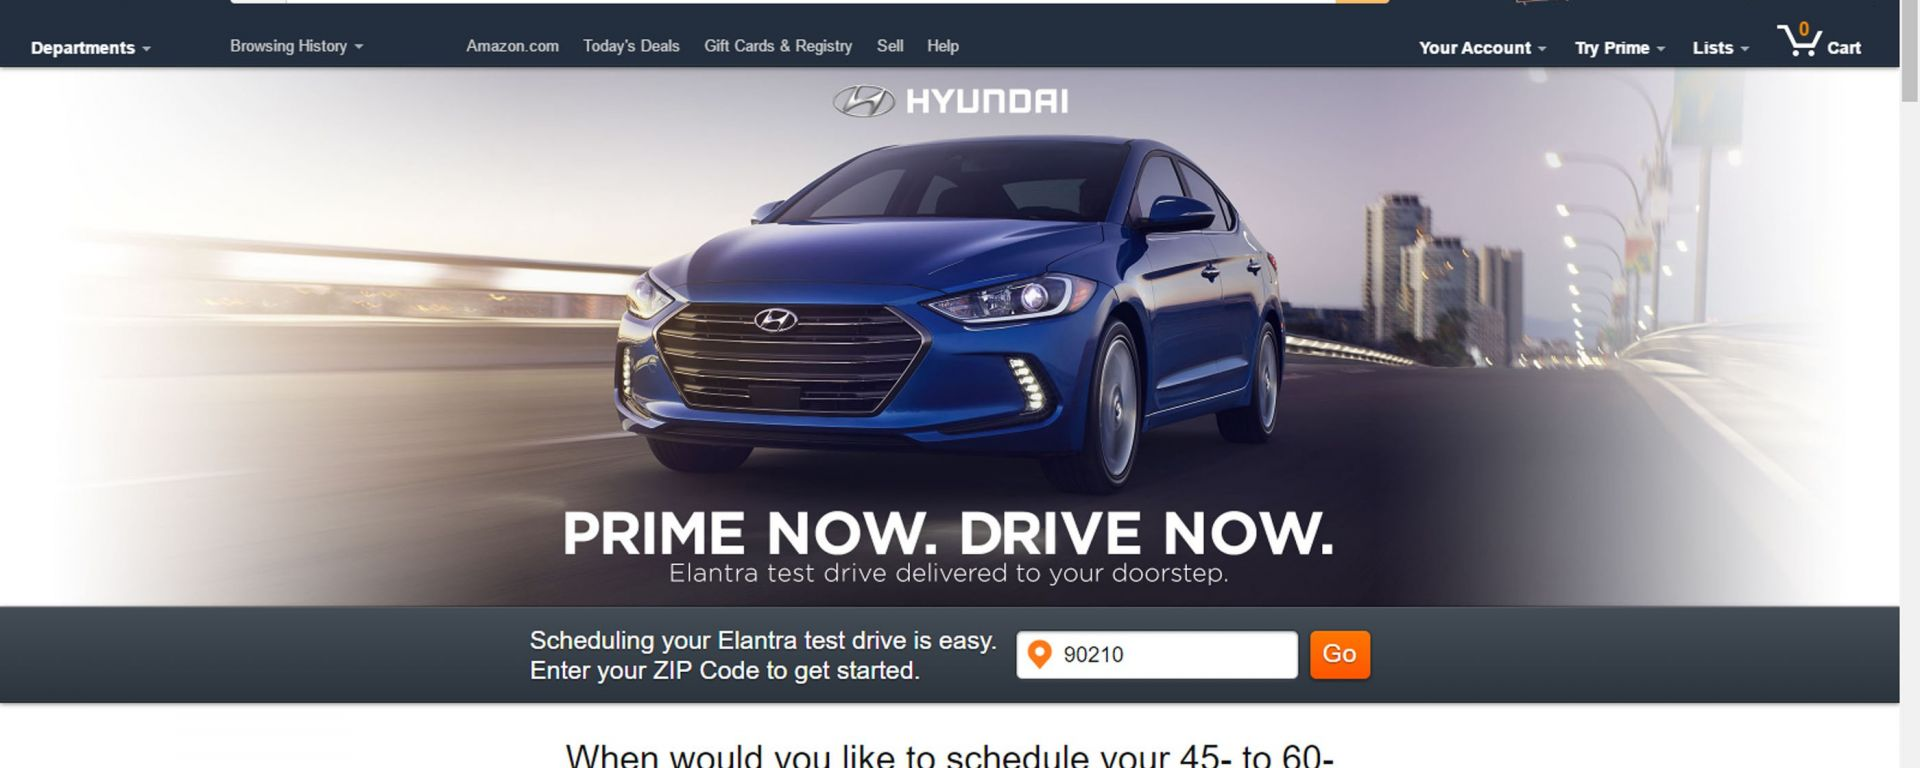 Amazon Prime Now per i test drive Hyundai